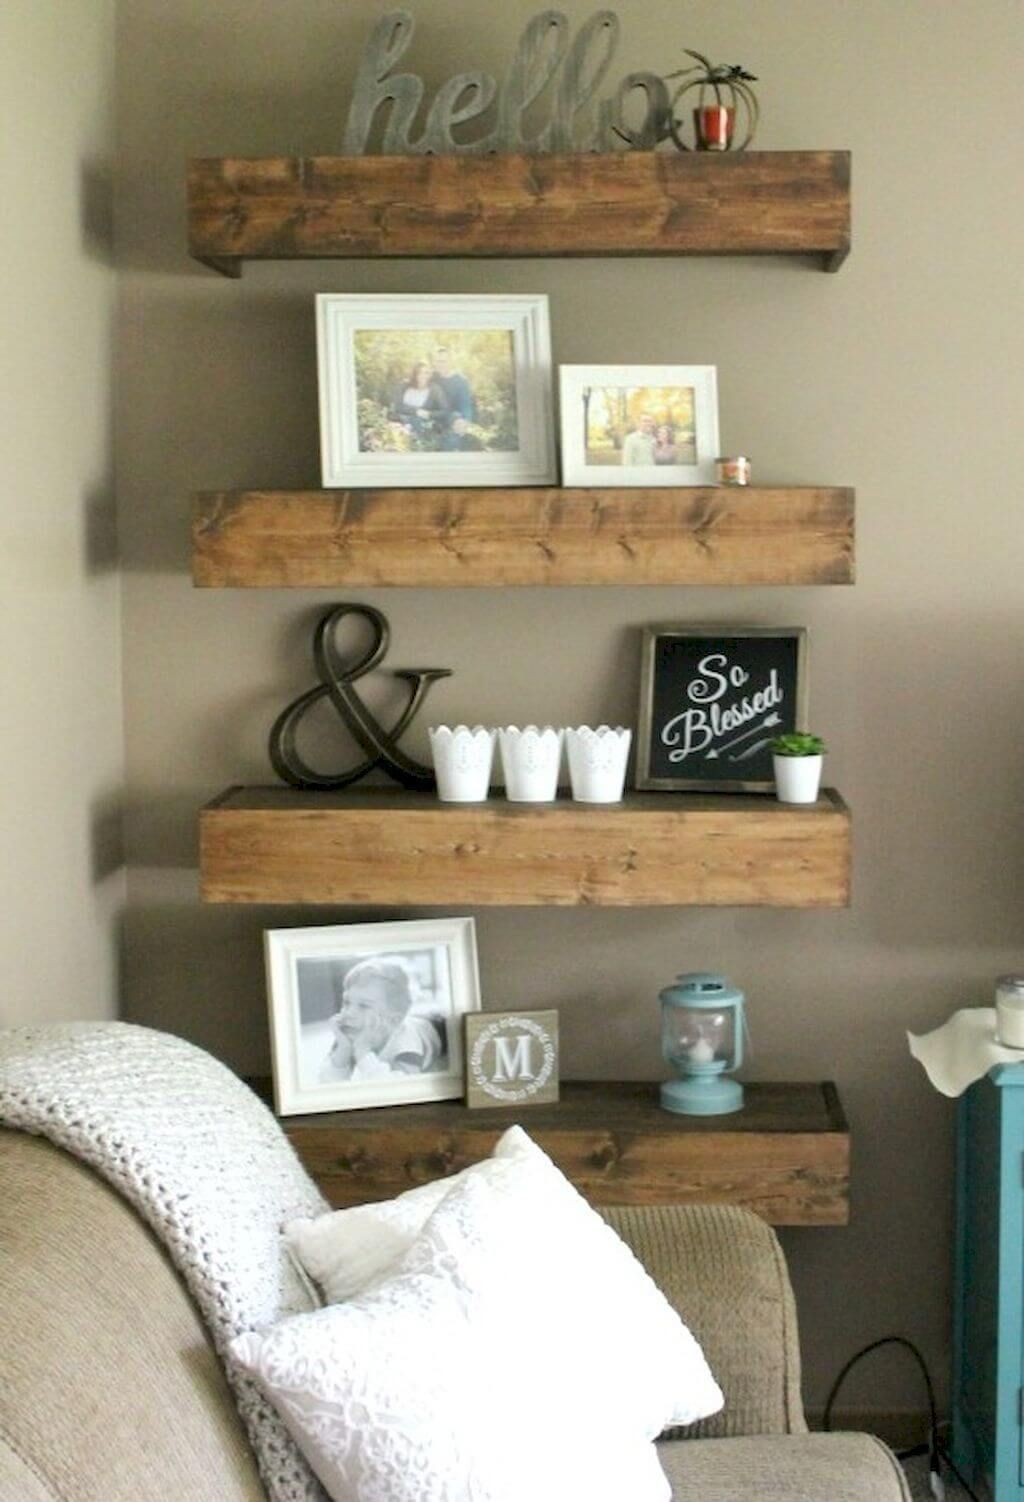 26 Farmhouse Shelf Decor Ideas That Are Both Functional And